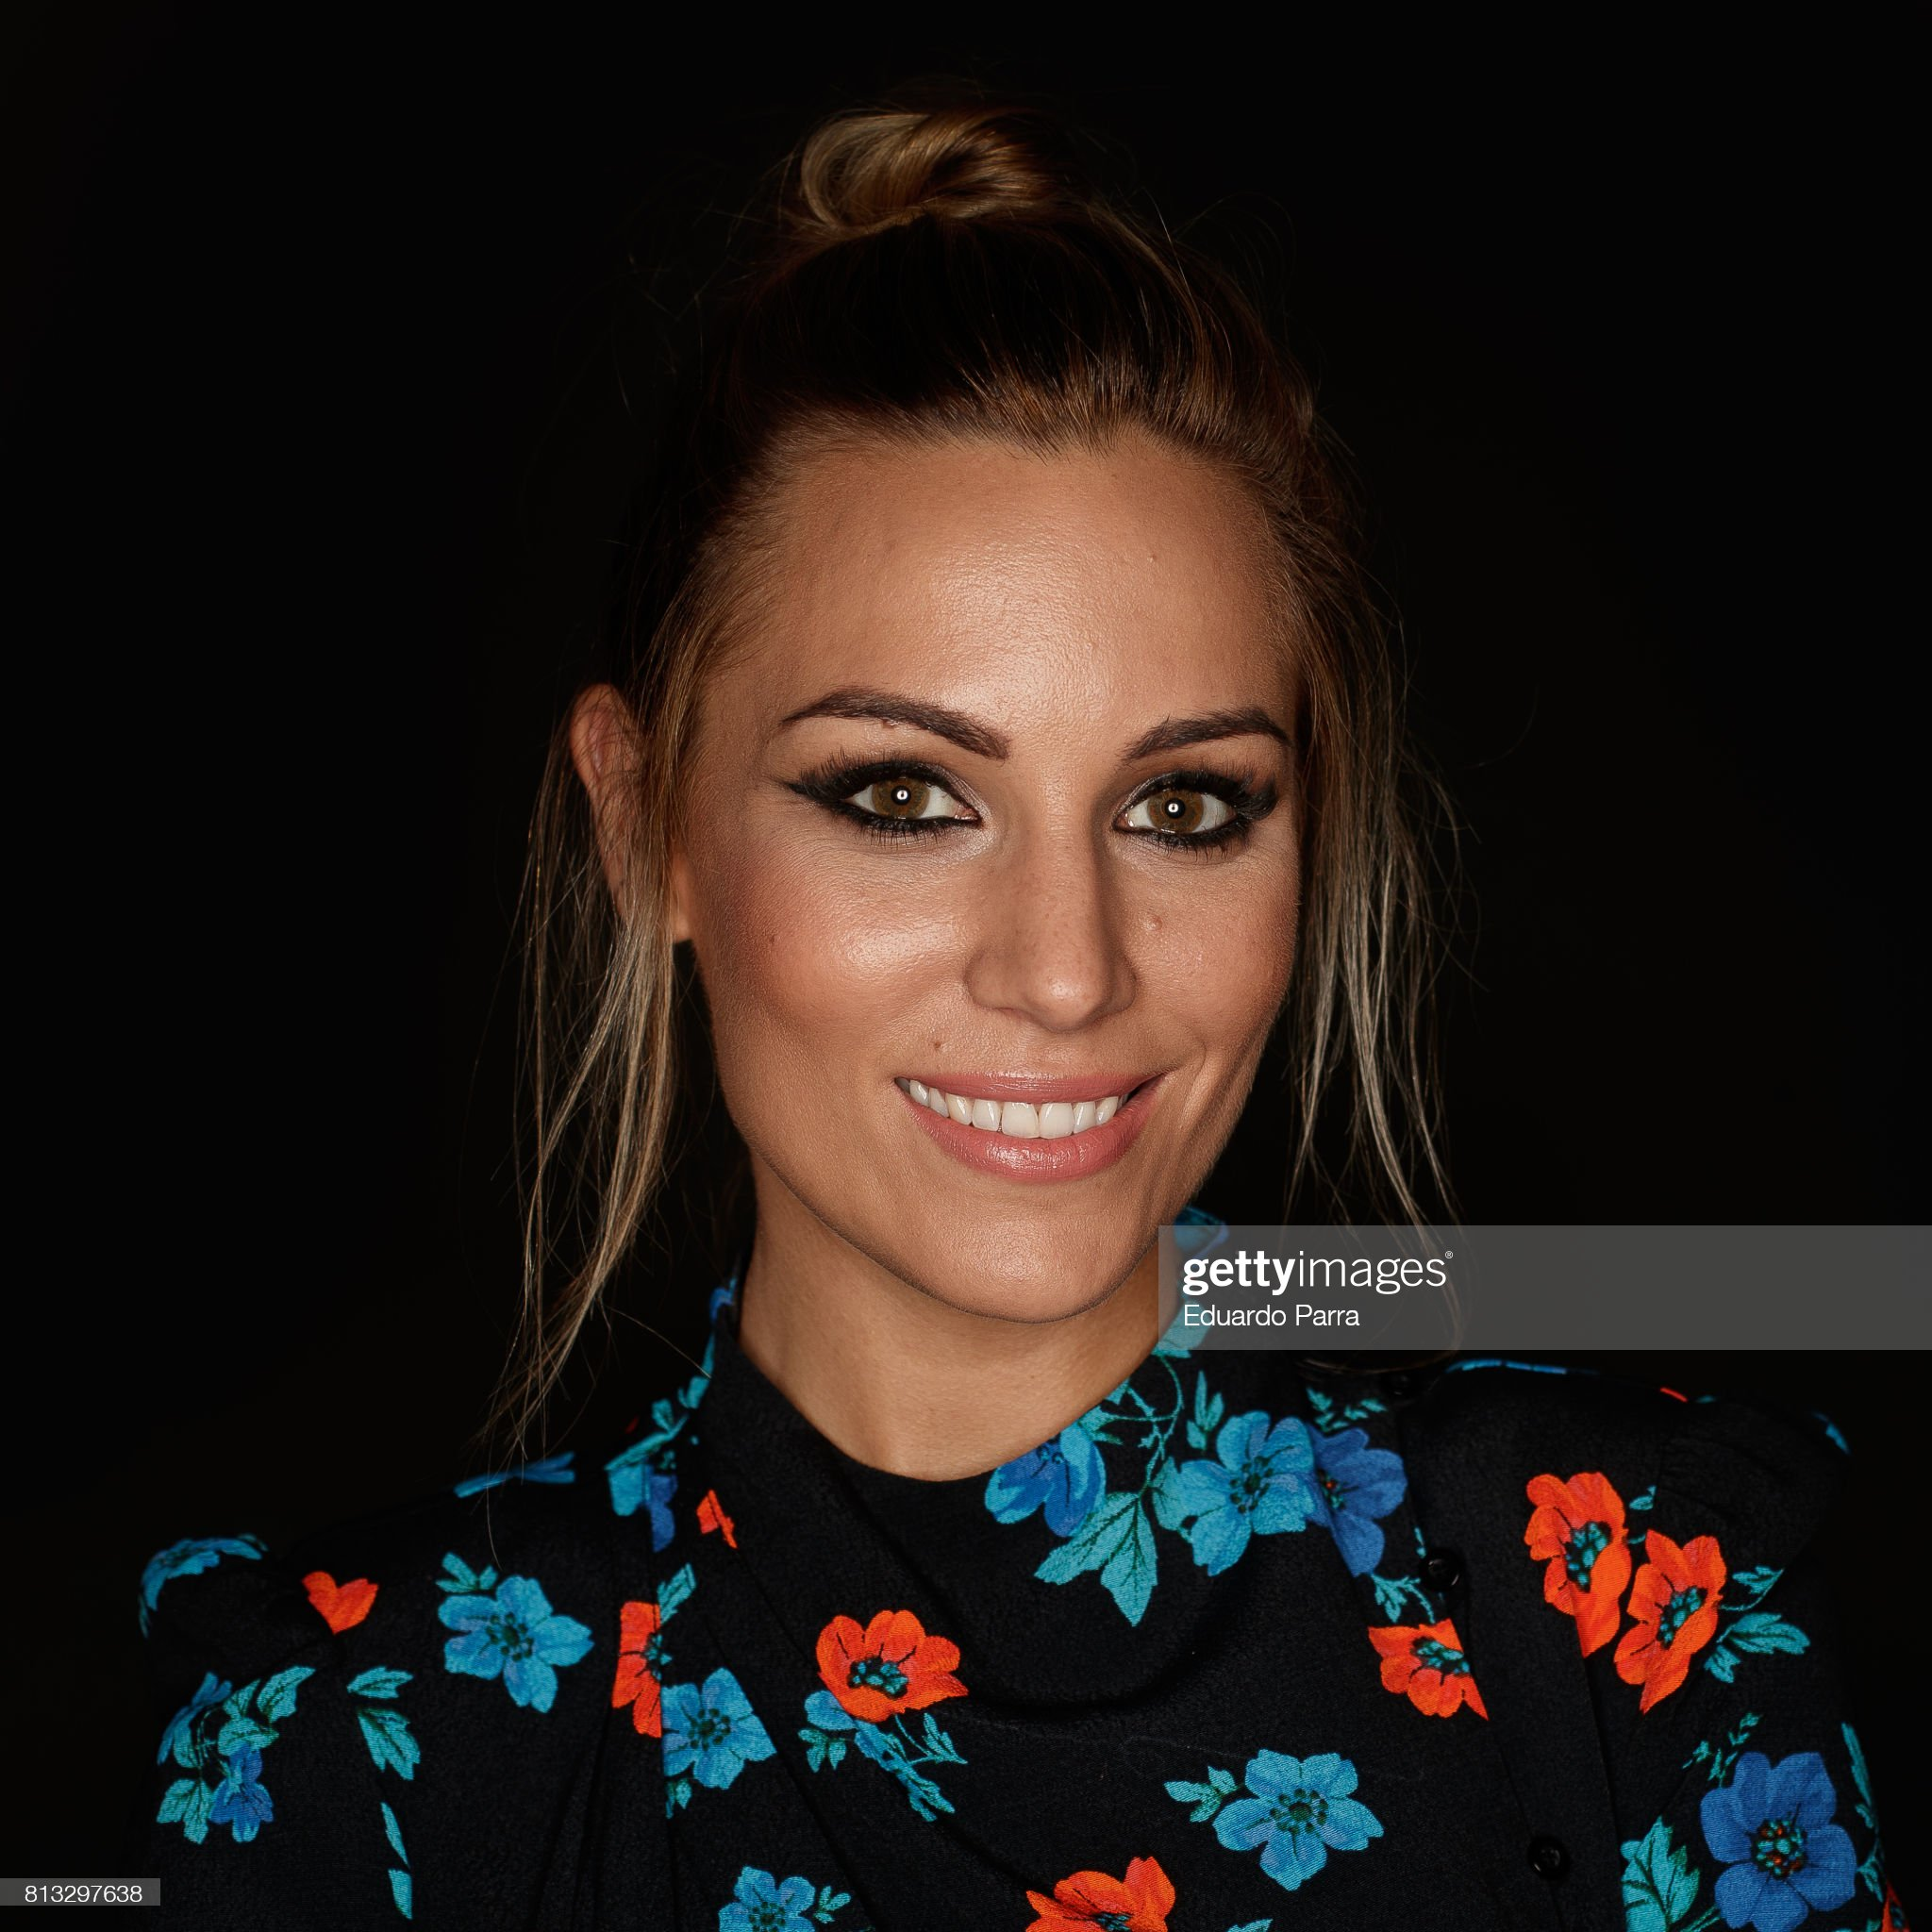 COLOR DE OJOS (clasificación y debate de personas famosas) Singer-edurne-garcia-arrives-at-got-talent-show-at-coliseum-theatre-picture-id813297638?s=2048x2048